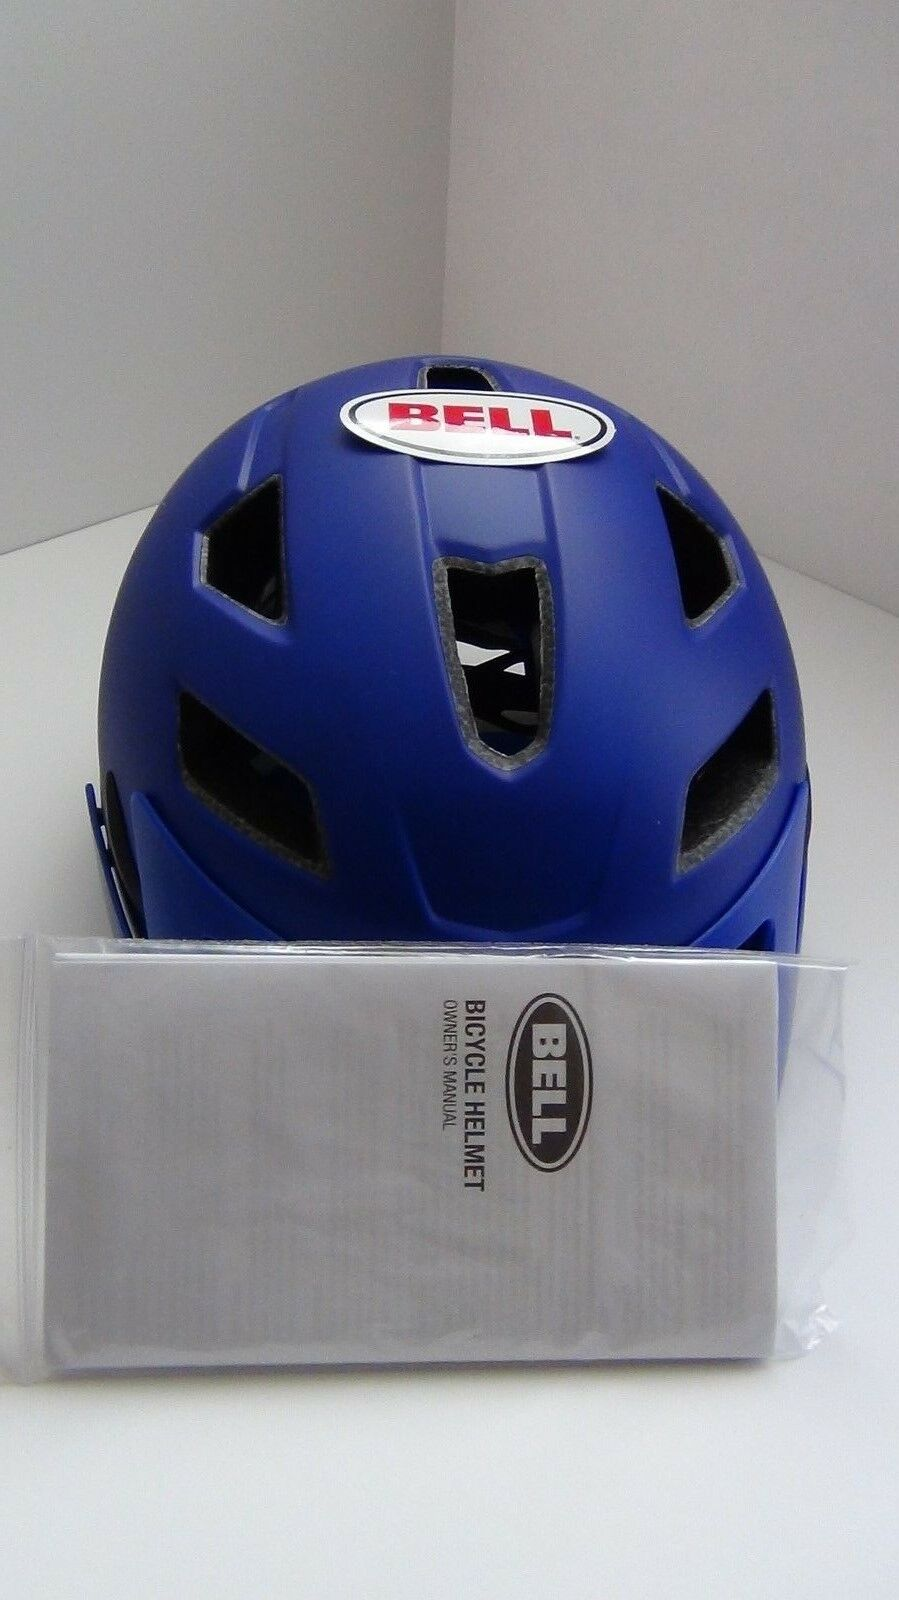 Bell safety helmet, size Universal Youth